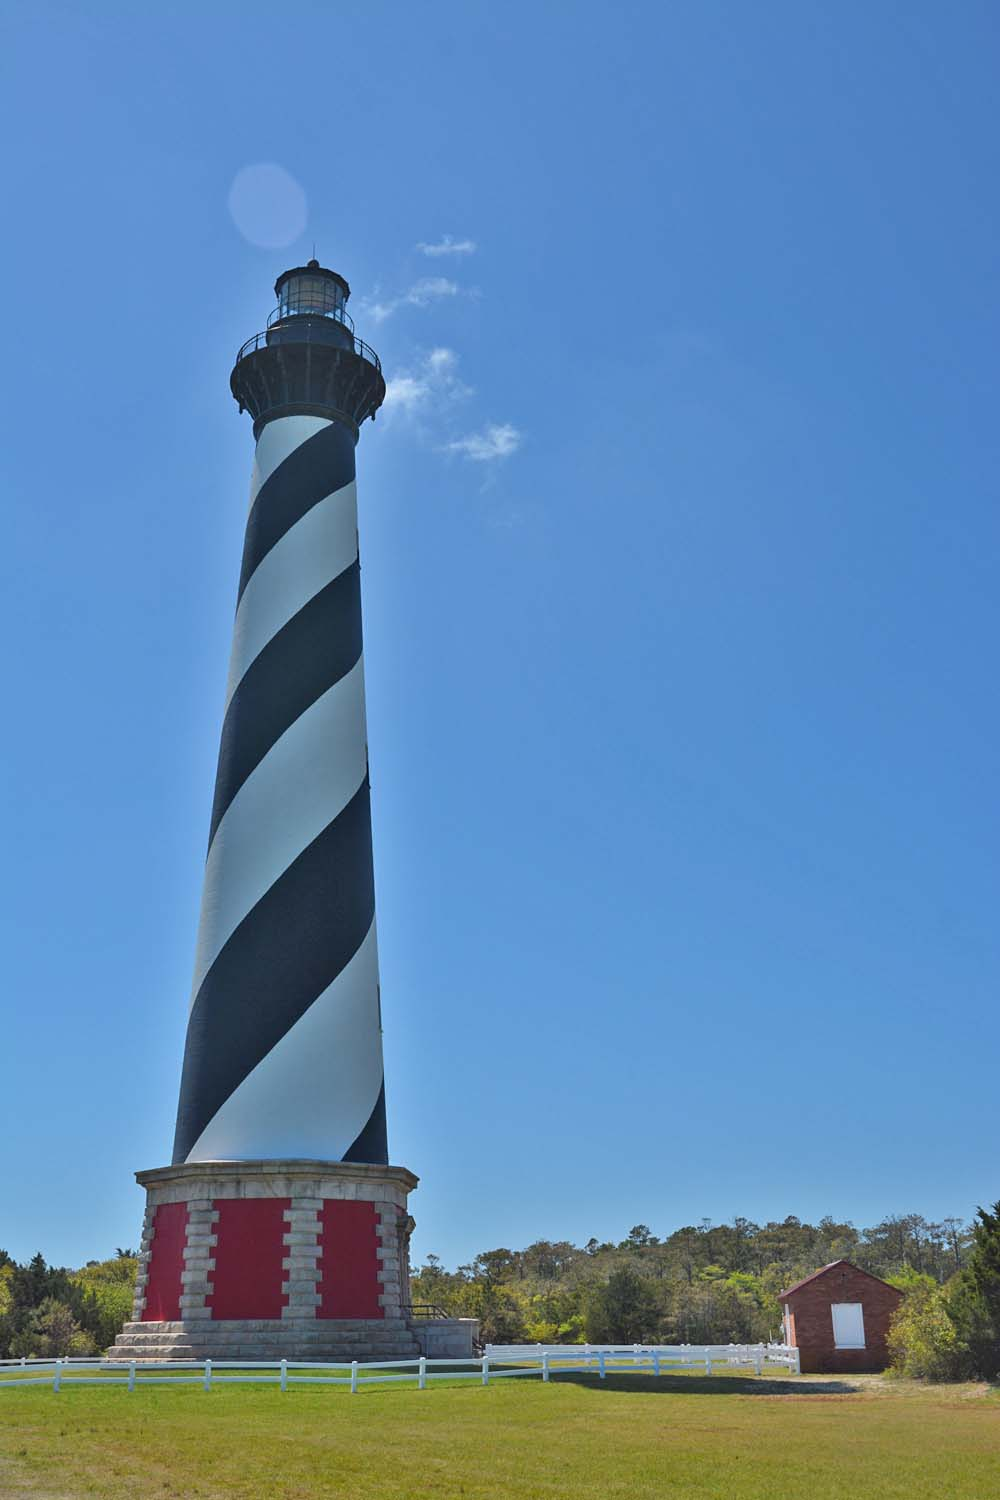 Cape Hatteras lighthouse is big